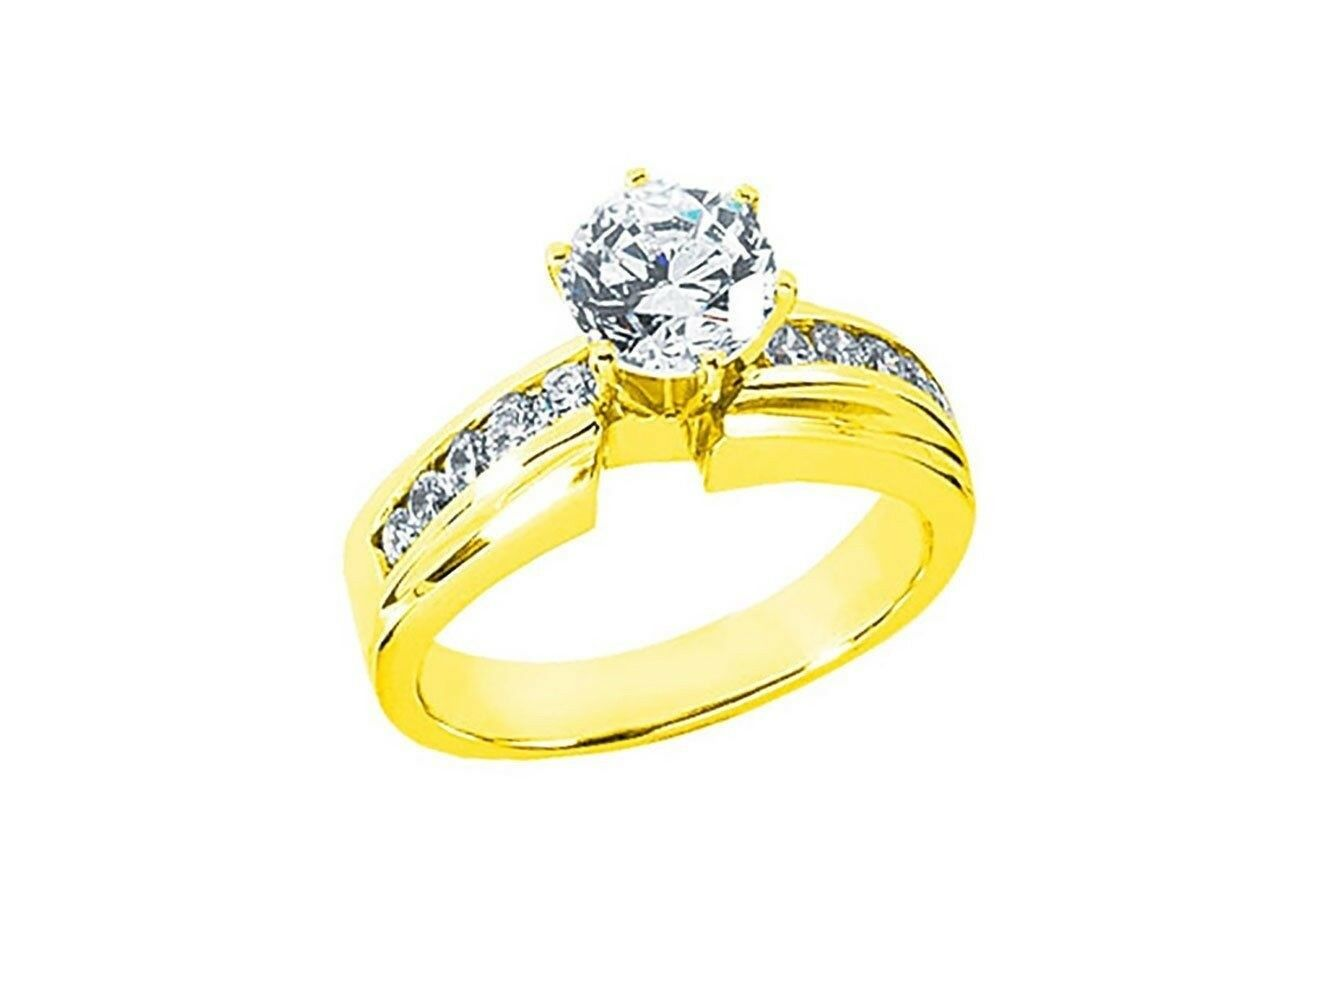 Natural 1.00Ct Round Cut Diamond Engagement Ring Solid 14kt gold IJ I1